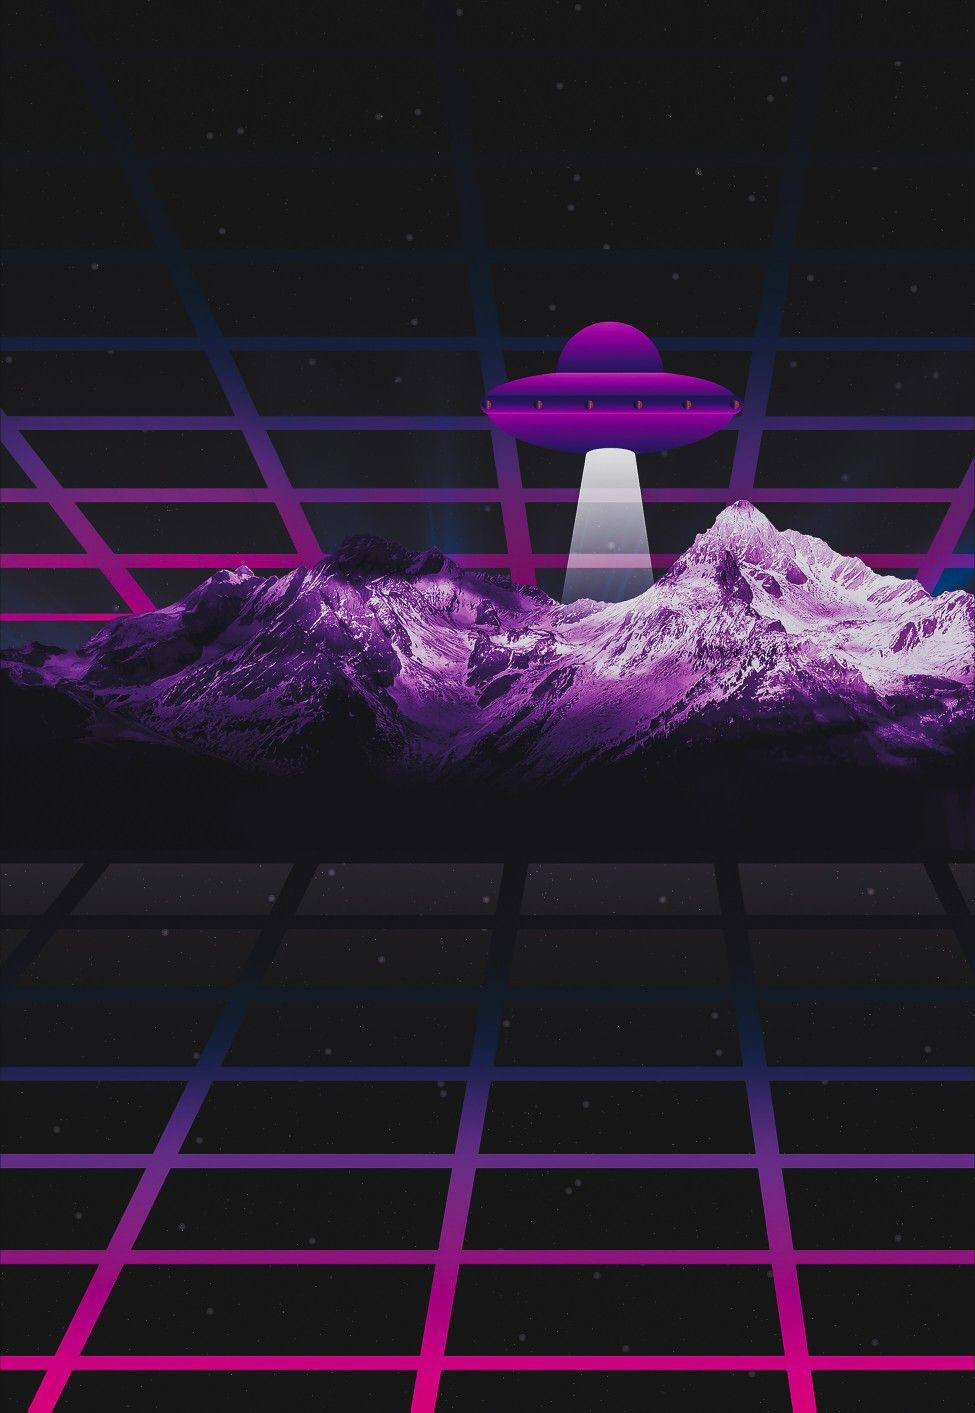 80s Retro Space In 2020 Aesthetic Space Aesthetic Wallpapers Retro Aesthetic